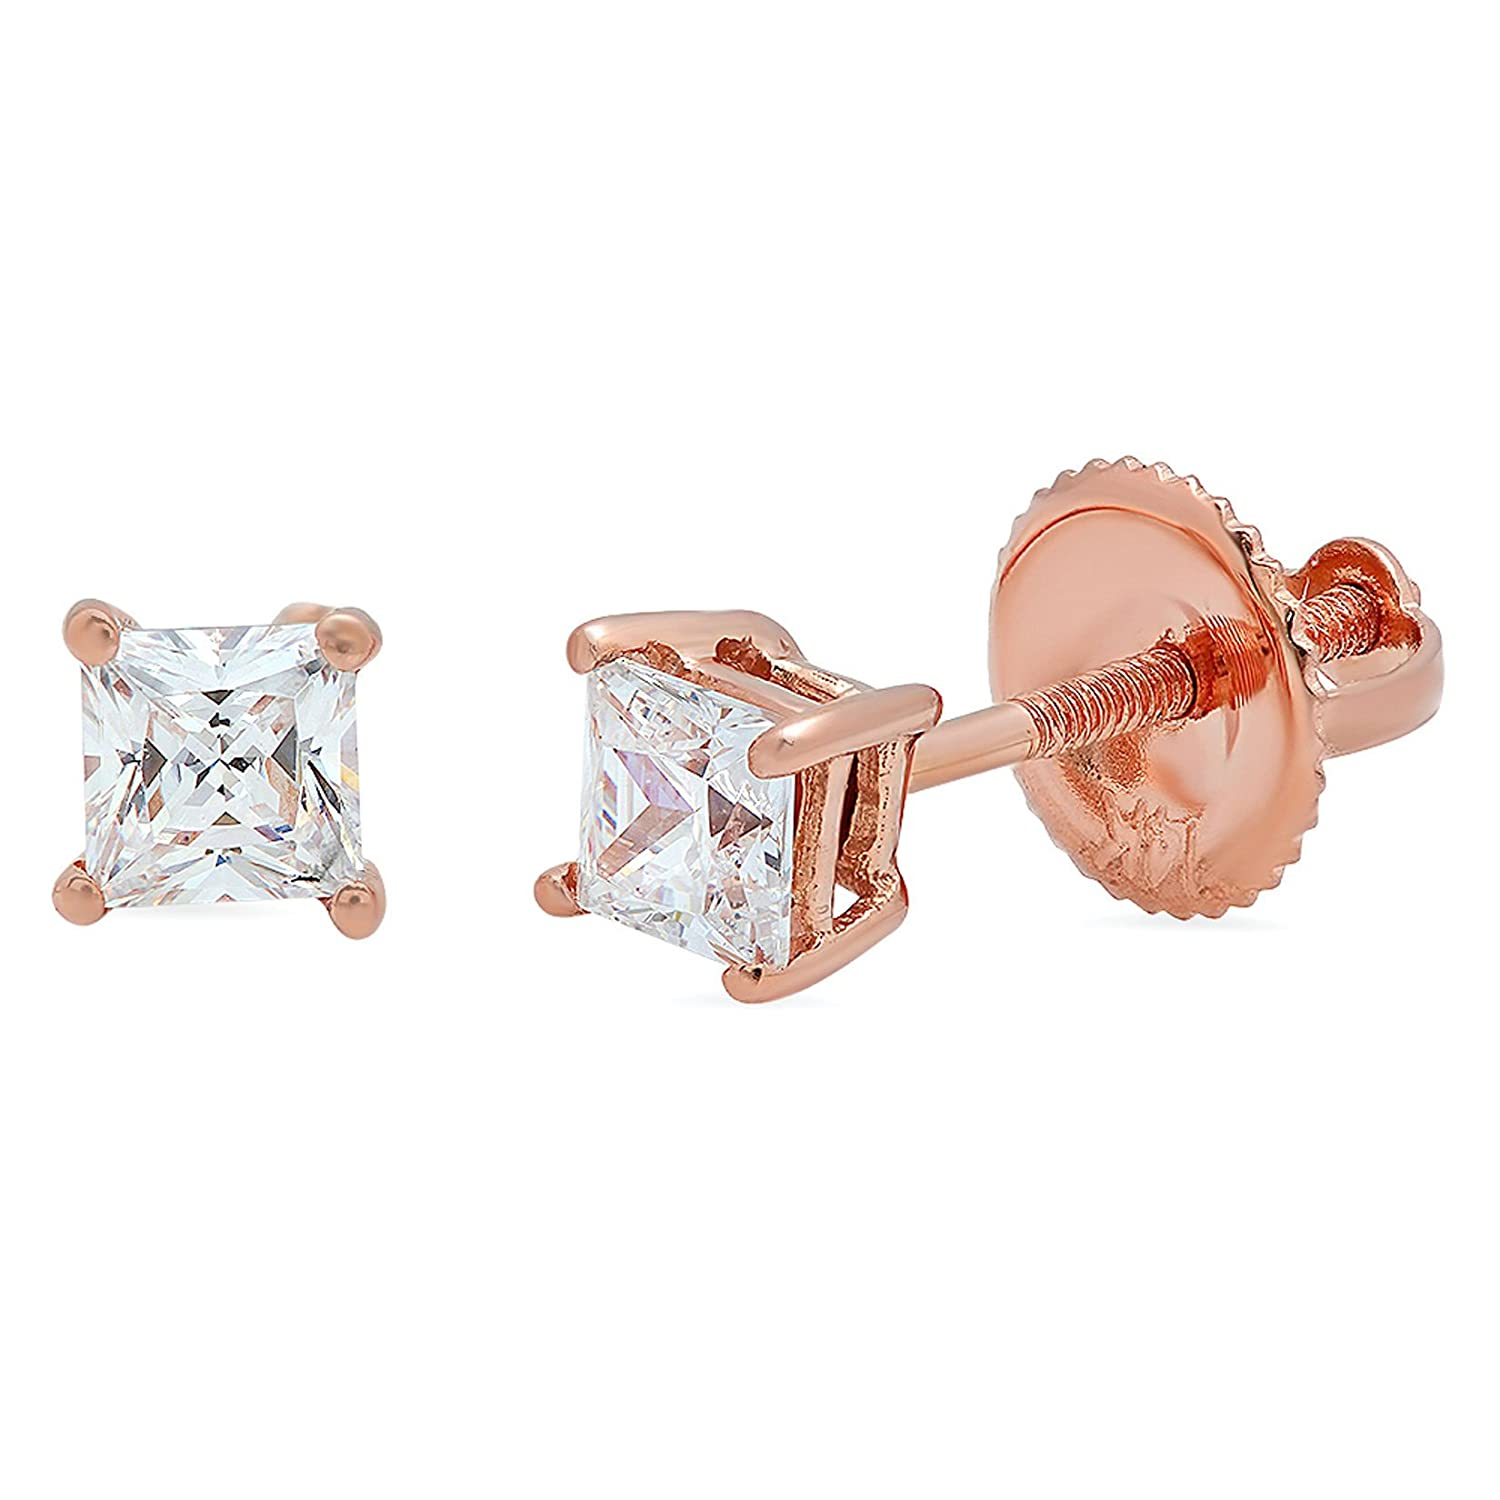 0.4ct Brilliant Princess Cut Solitaire Highest Quality Moissanite Unisex Anniversary Gift Stud Earrings Real Solid 14k Rose Gold Screw Back